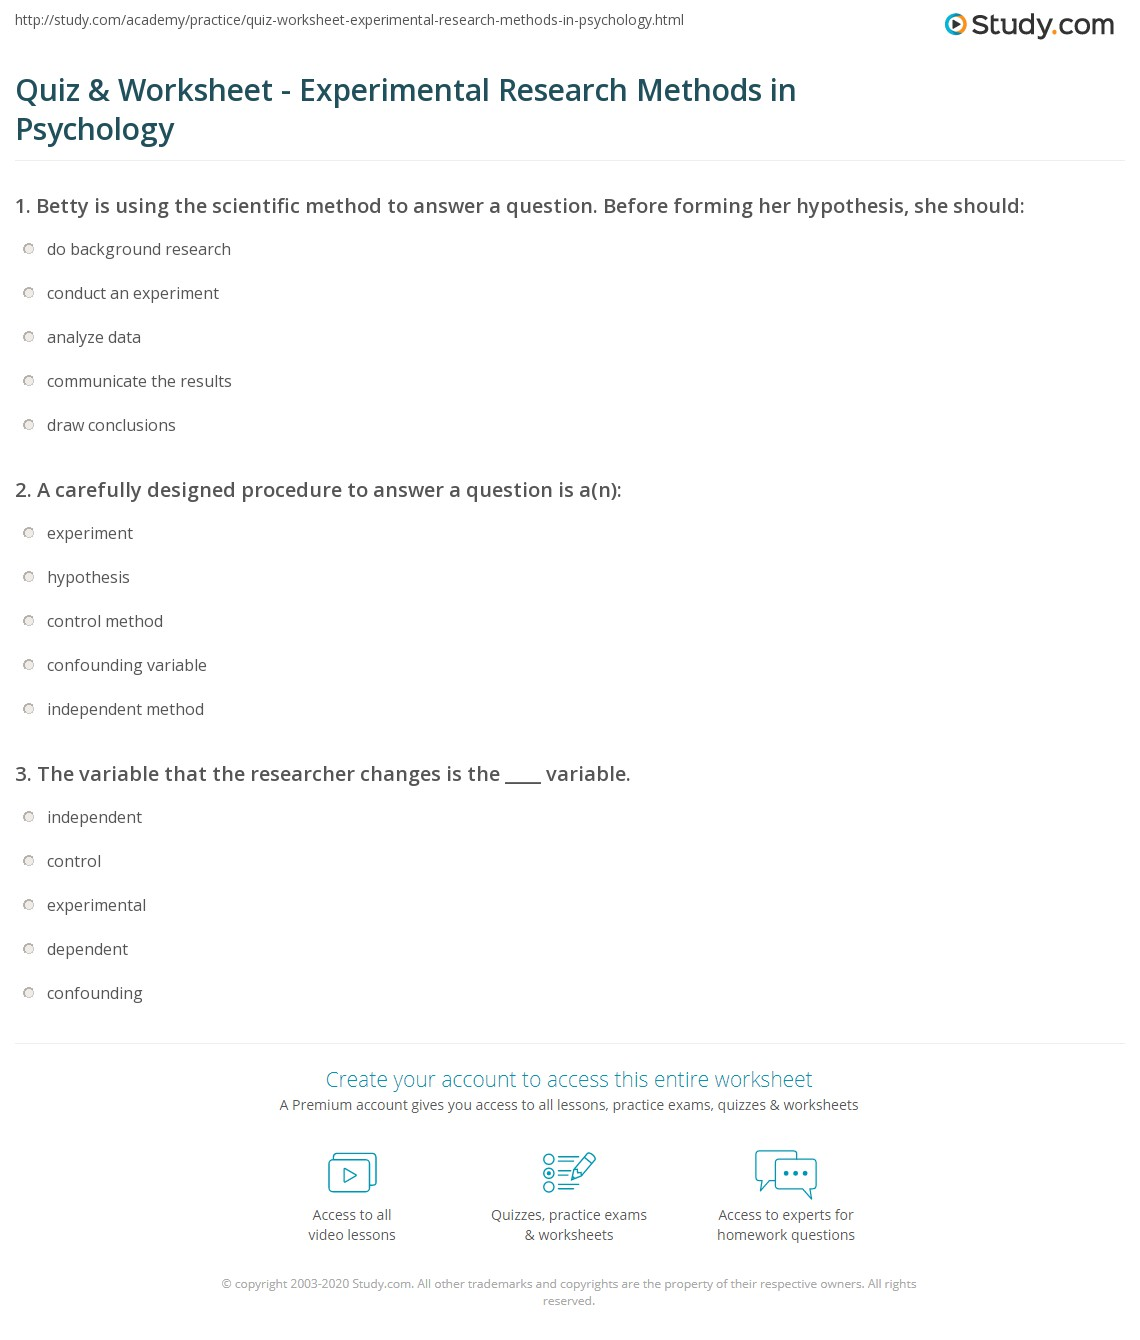 Print Experimental Research in Psychology: Methods Studies \u0026 Definition Worksheet